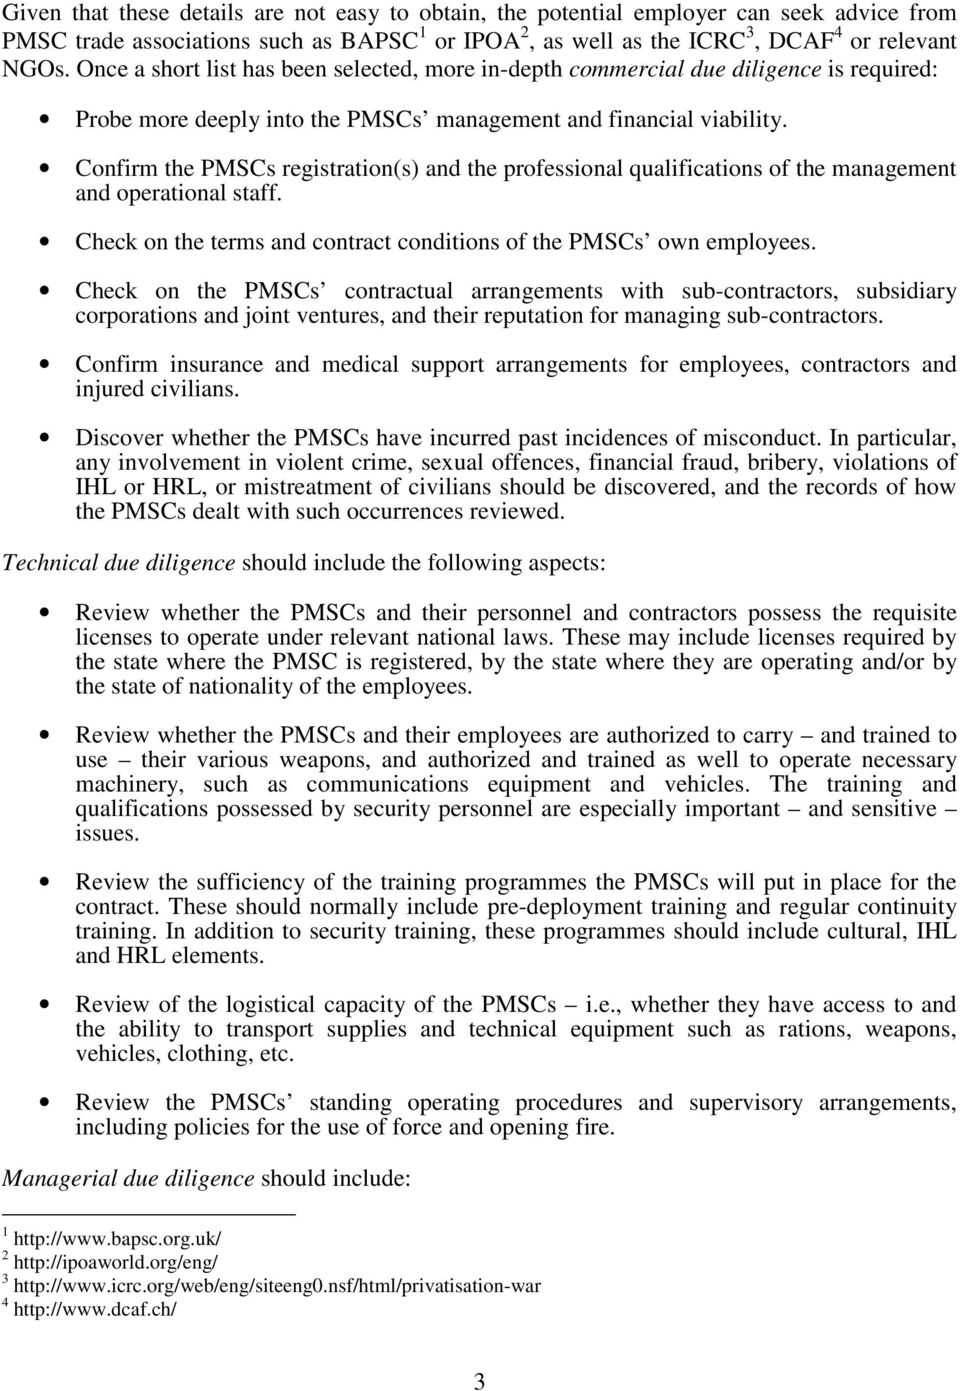 Confirm the PMSCs registration(s) and the professional qualifications of the management and operational staff. Check on the terms and contract conditions of the PMSCs own employees.